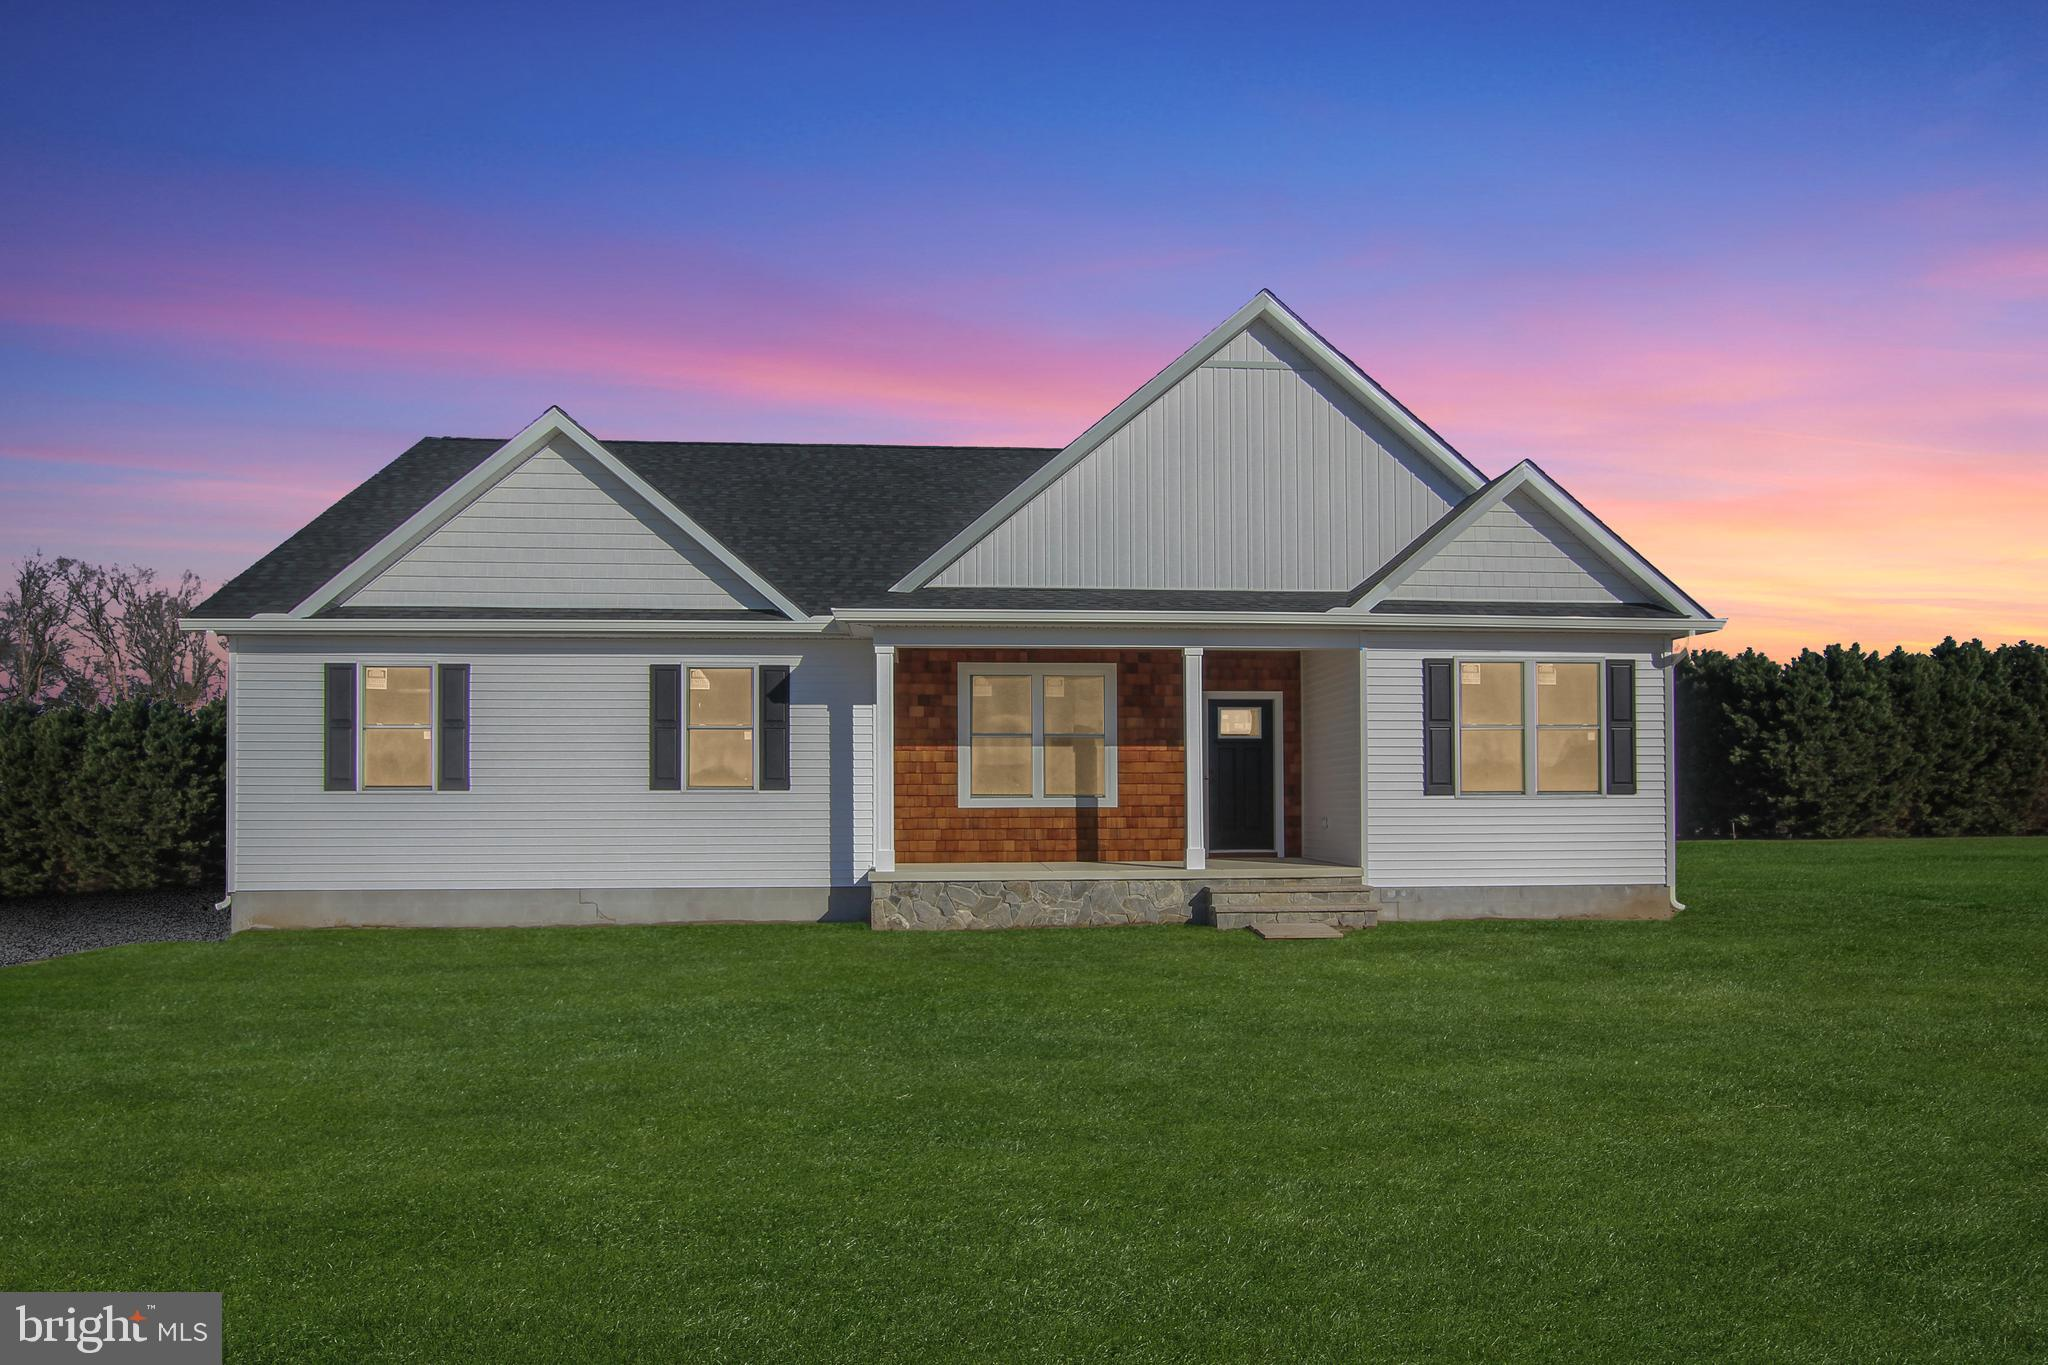 Beautiful New Construction located on a 3/4 acre lot in Green Briar. Home is just over 1,800 sq. ft.